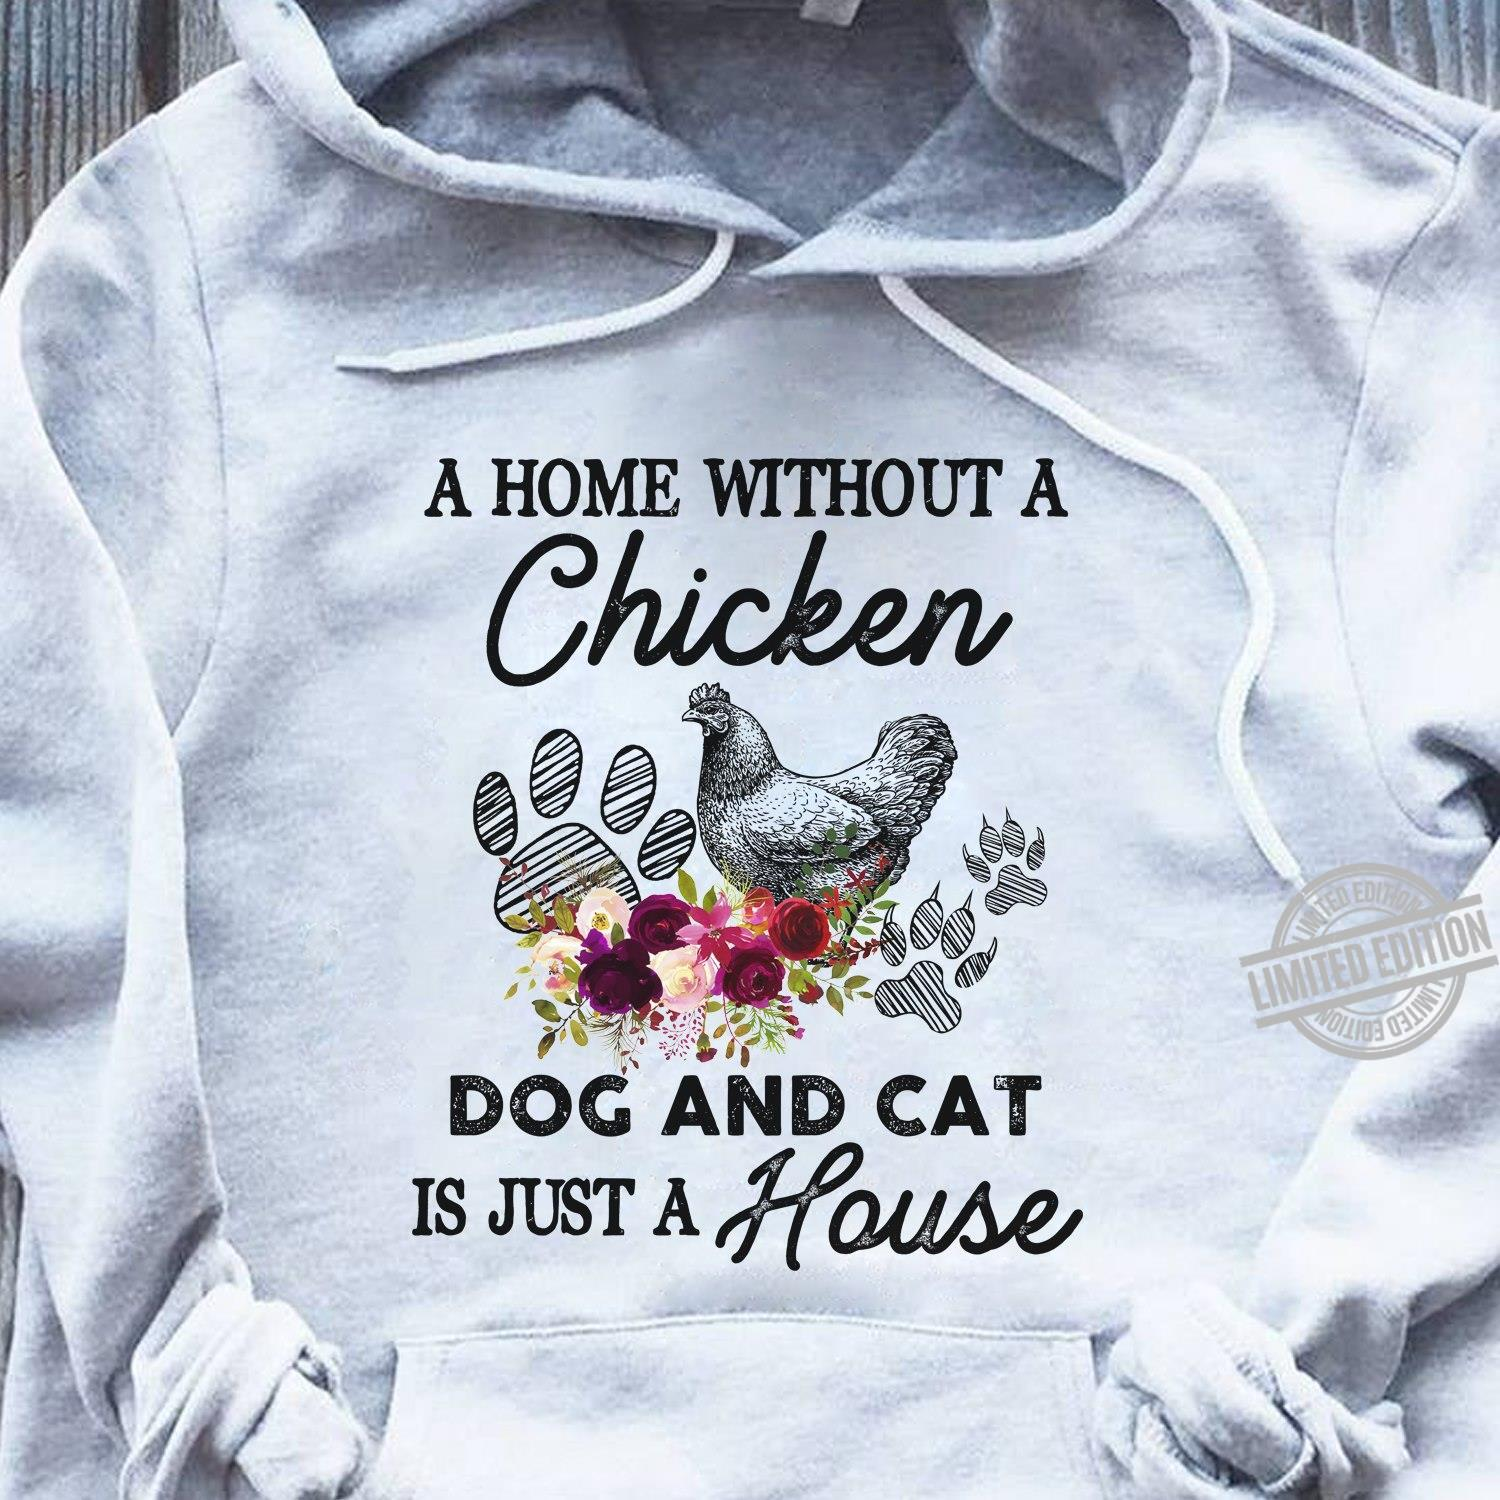 A Home Without A Chicken Dog And Cat Is Just A House Shirt